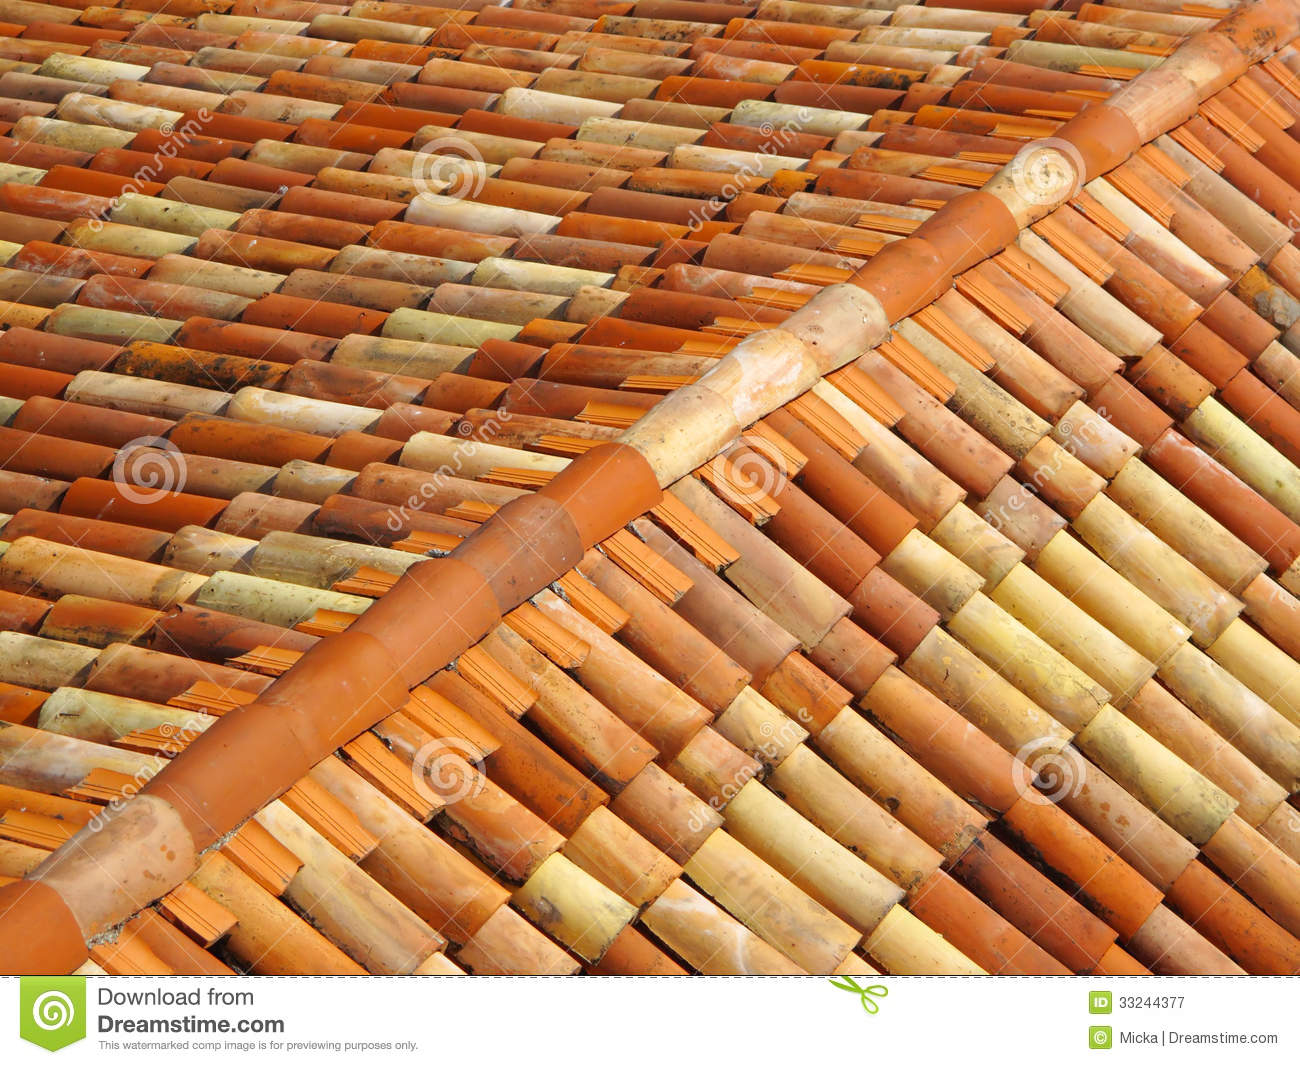 Roof tiles with ridge tiles on top stock image image Fired tiles